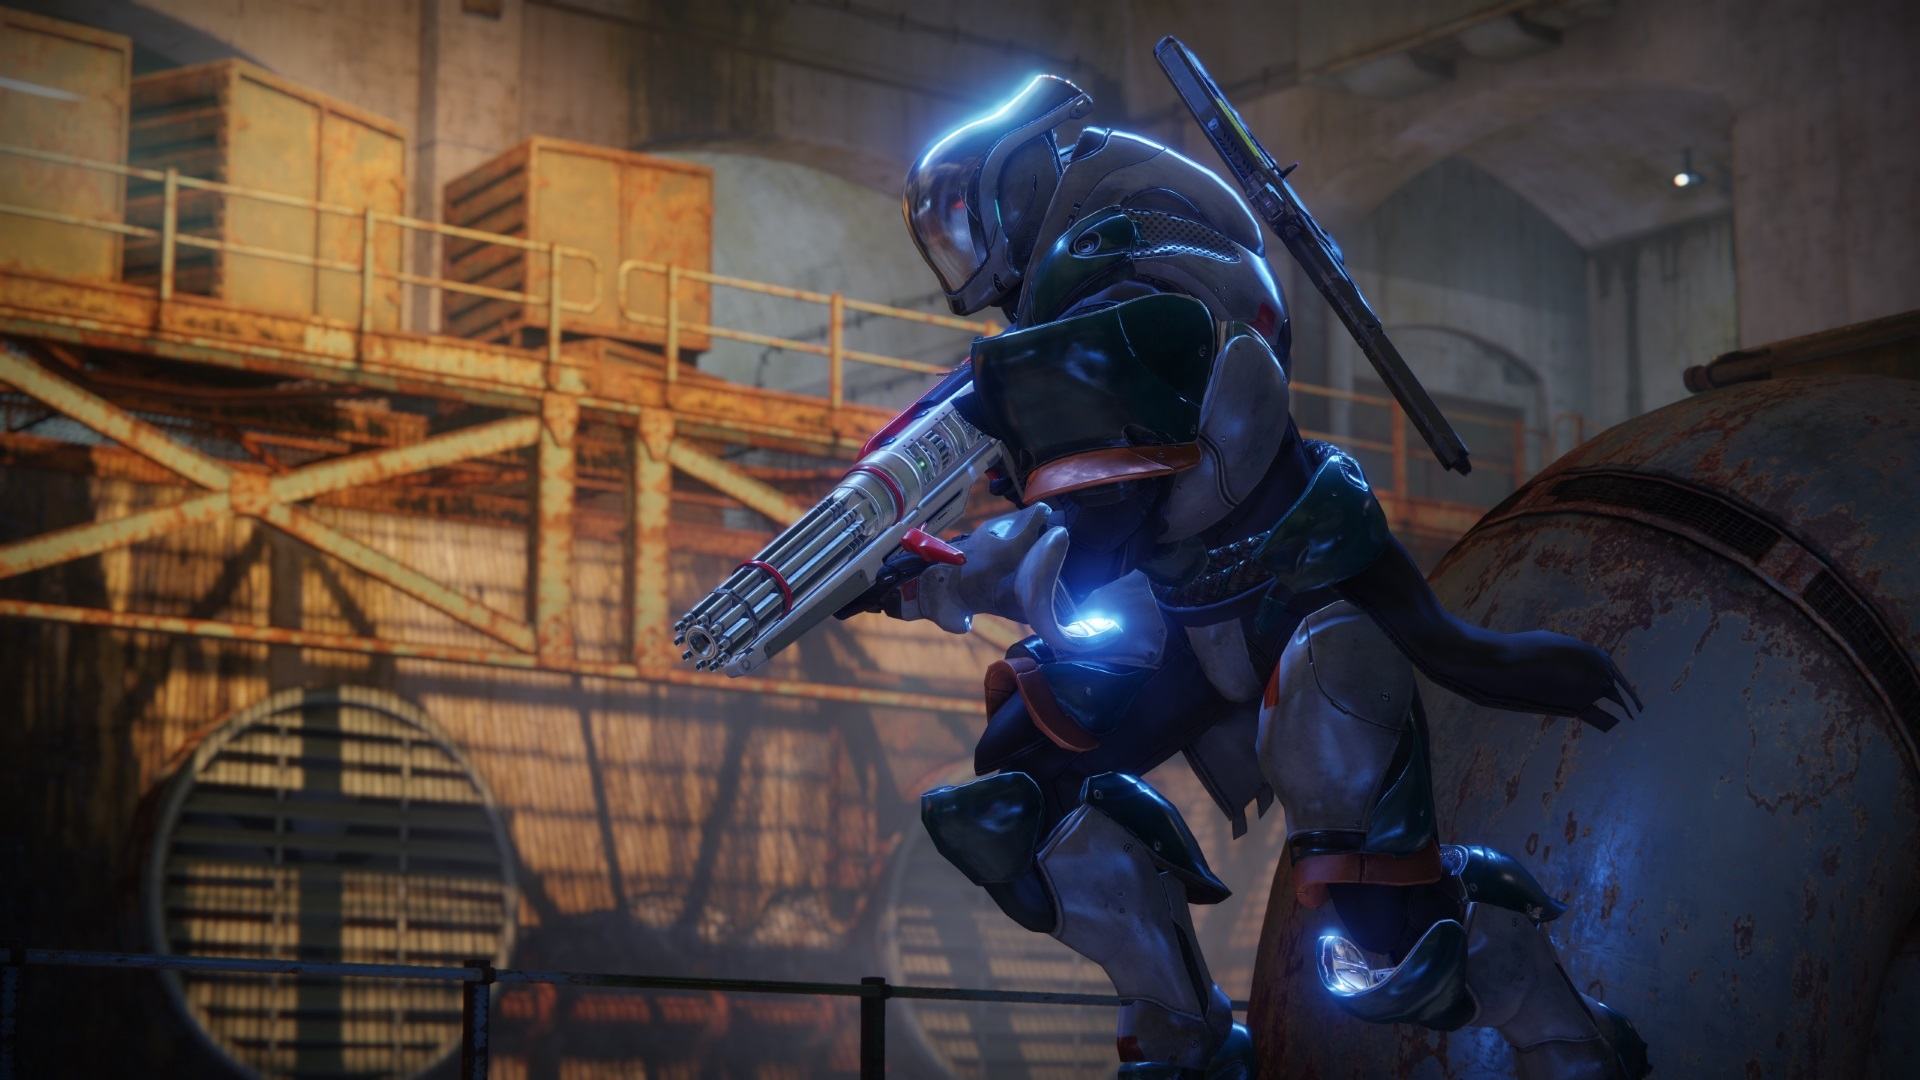 Destiny 2: How to get to Power level 280 (and beyond) while playing